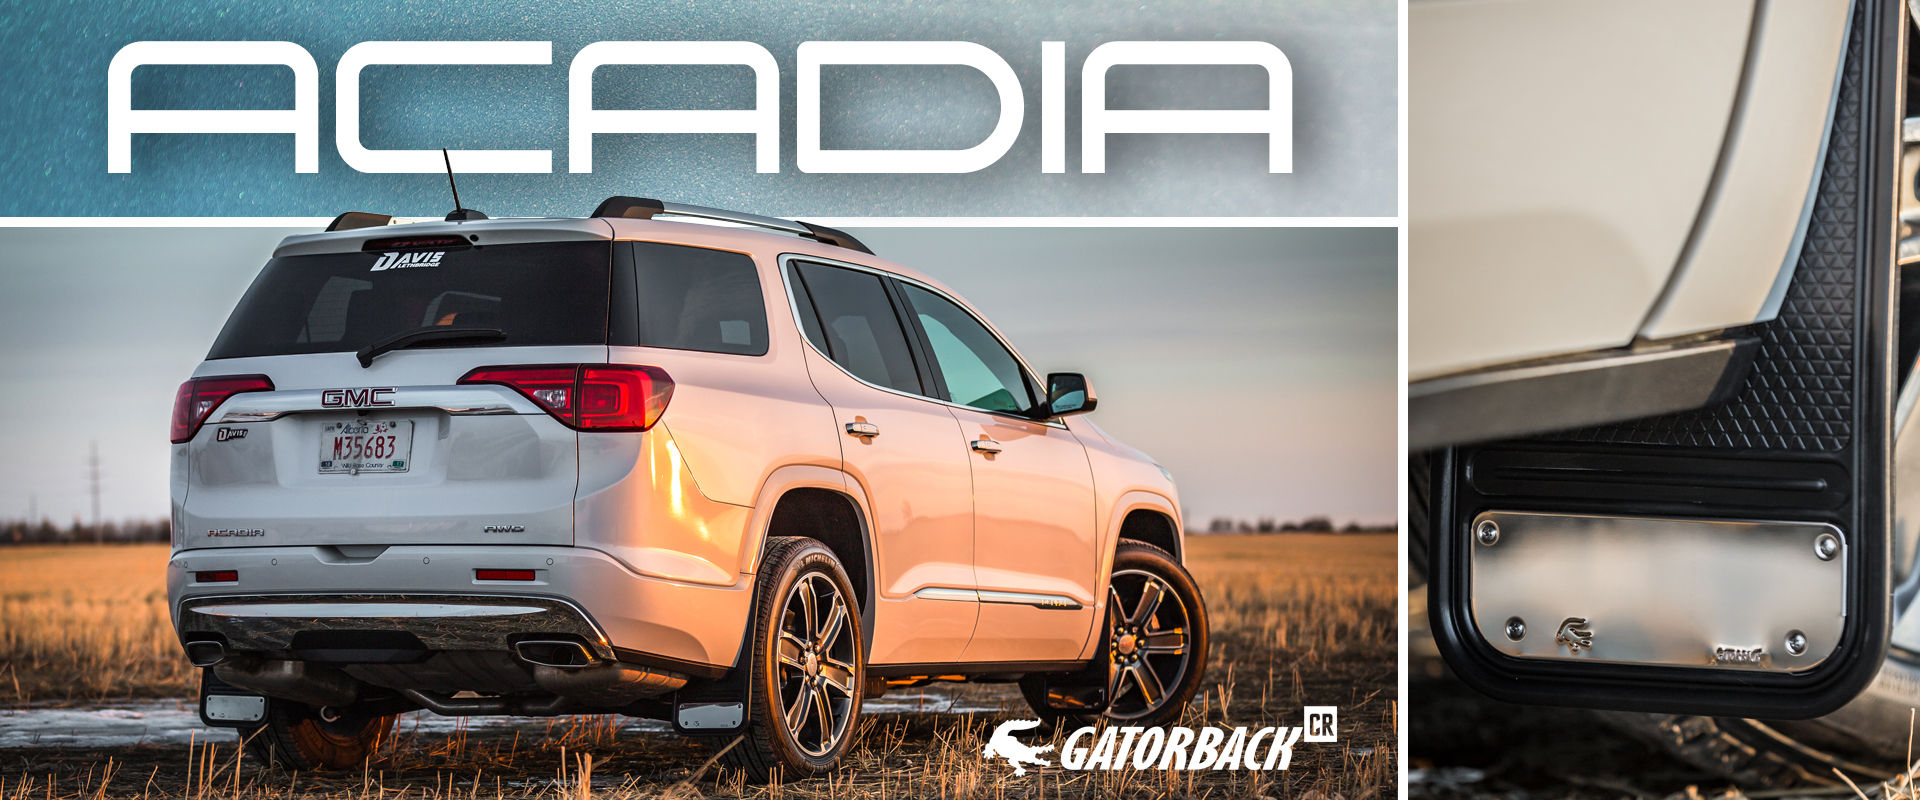 Gatorback CR Mud Flaps for 2018 GMC Acadia